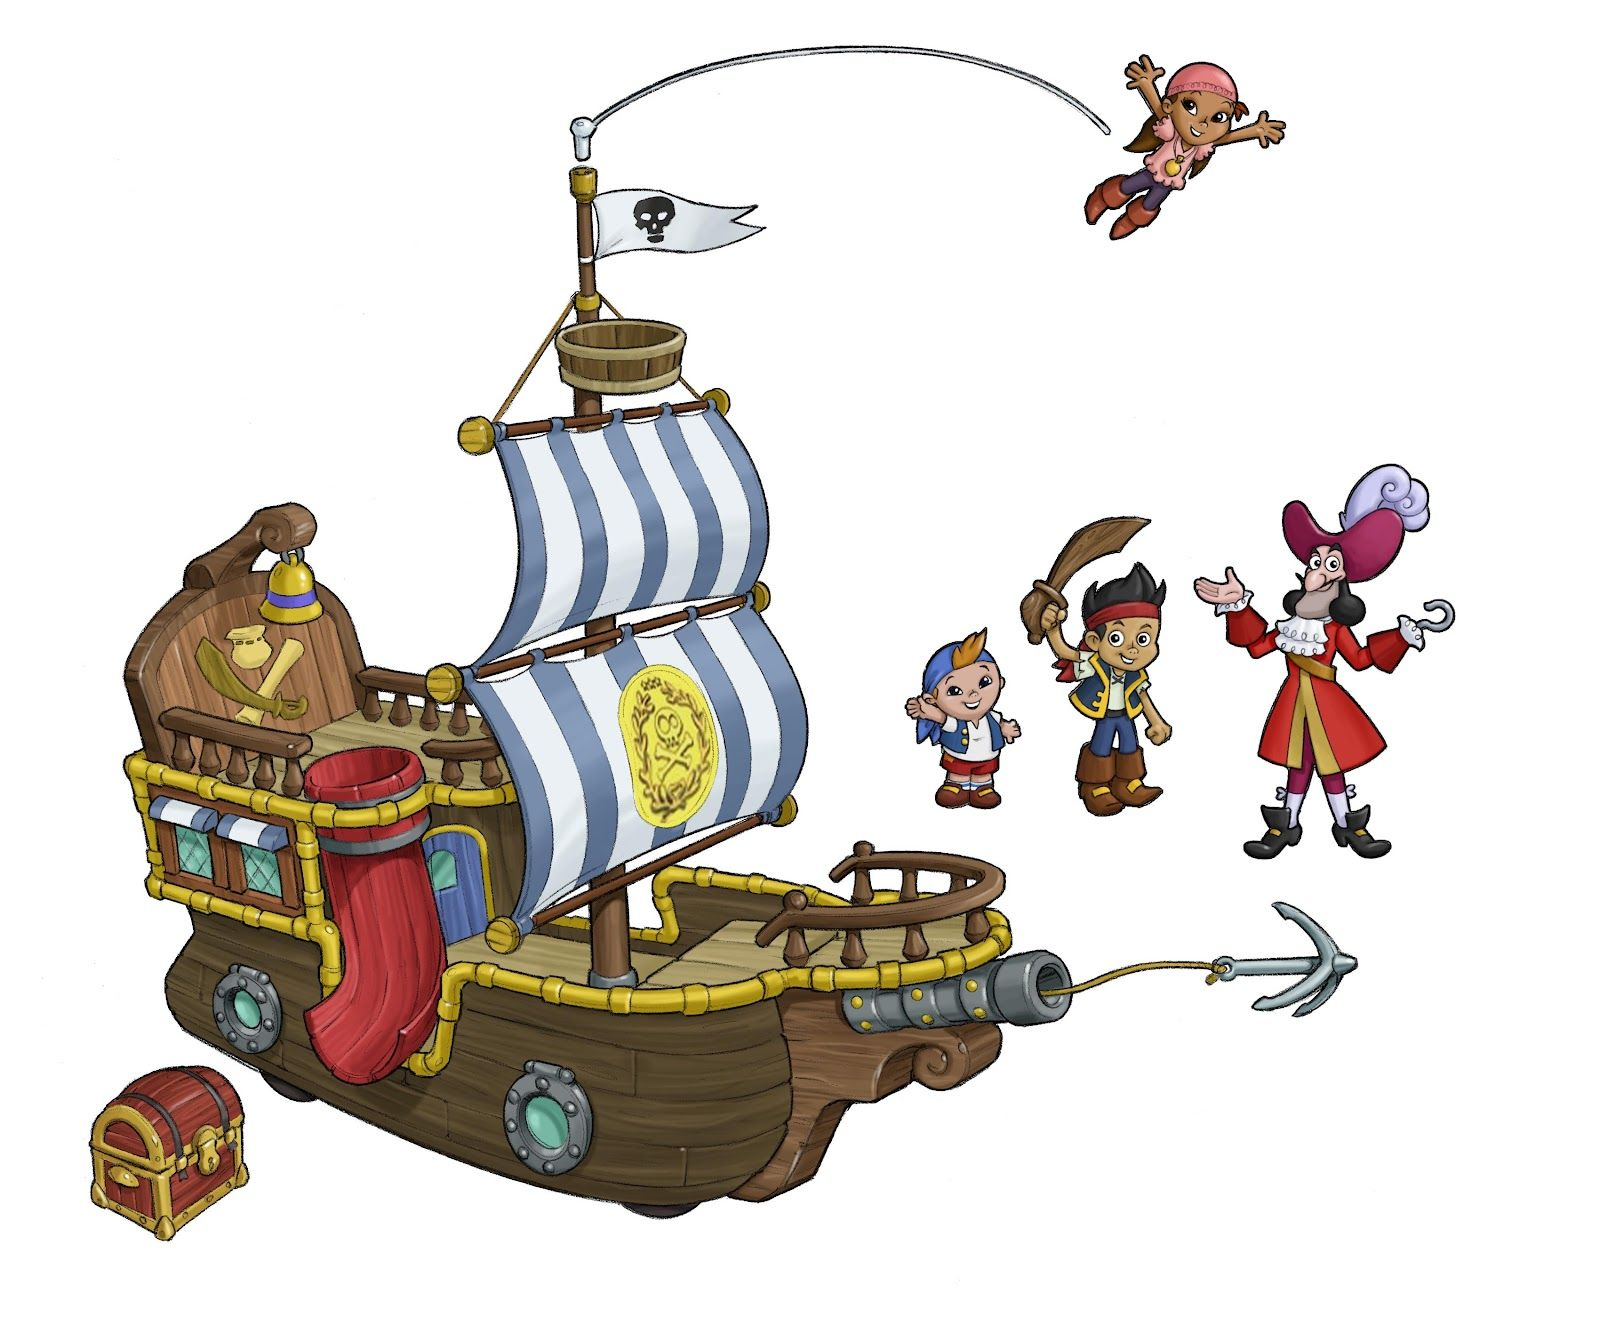 jake-and-the-neverland-pirates-bucky-ship-645368.jpg (1600×1318 ...